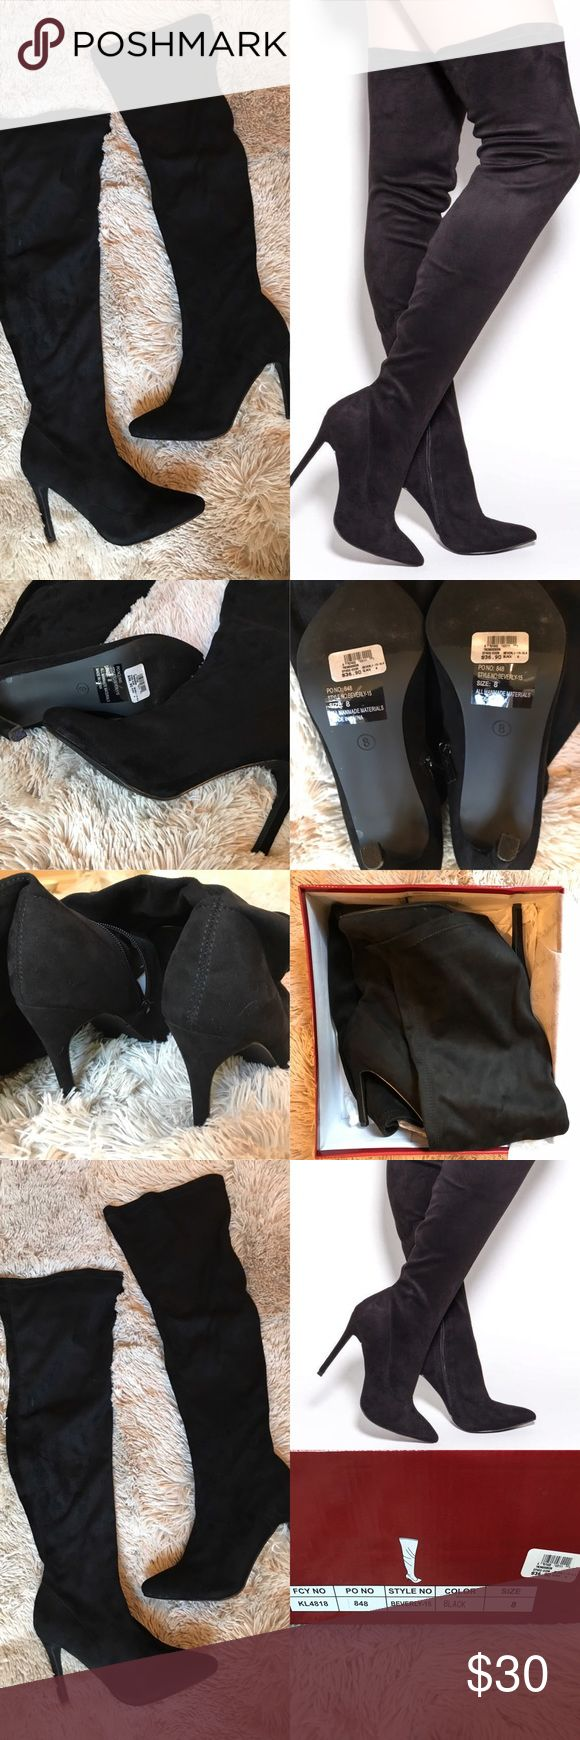 Windsor Black Over The Knee Suede Boots size 8 Black suede Over The Knee boots with zip on inner side.  Size 8. Comes with original box and packaging.  Brand new, unworn & in perfect condition. What you see is what you see :) Windsor Shoes Over the Knee Boots